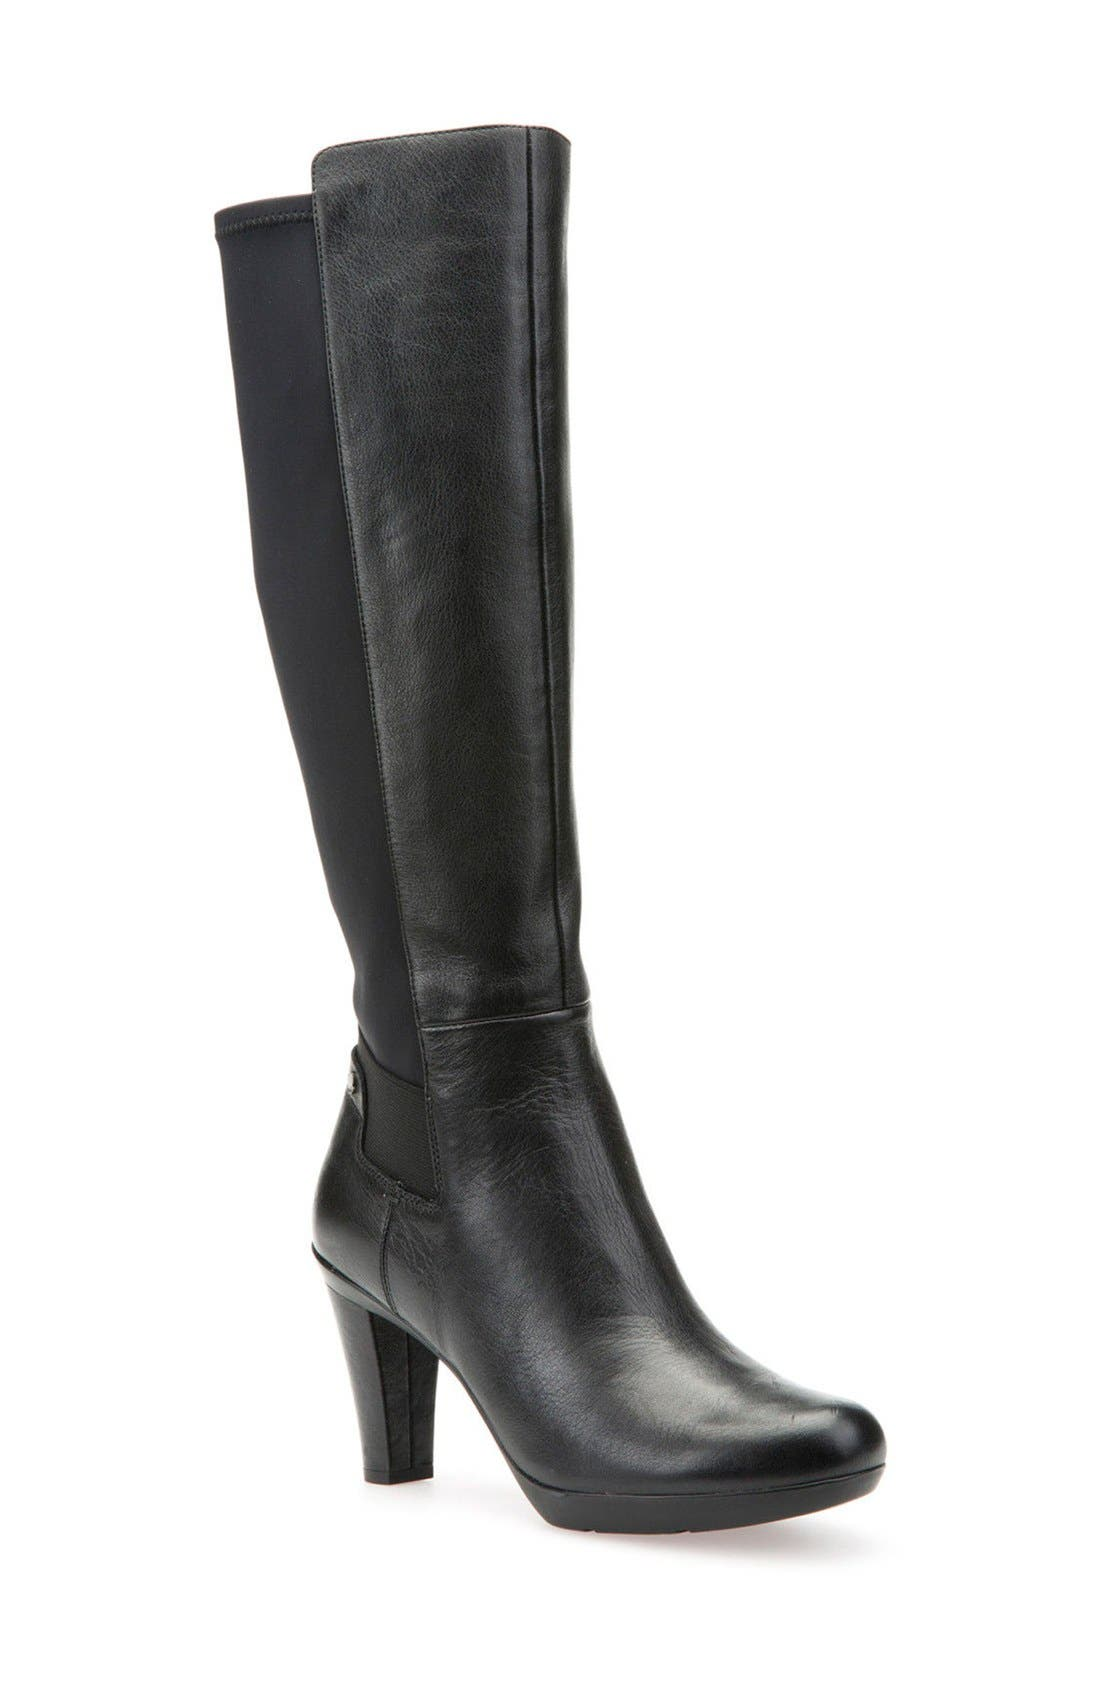 GEOX Inspirations 19 Tall Boot